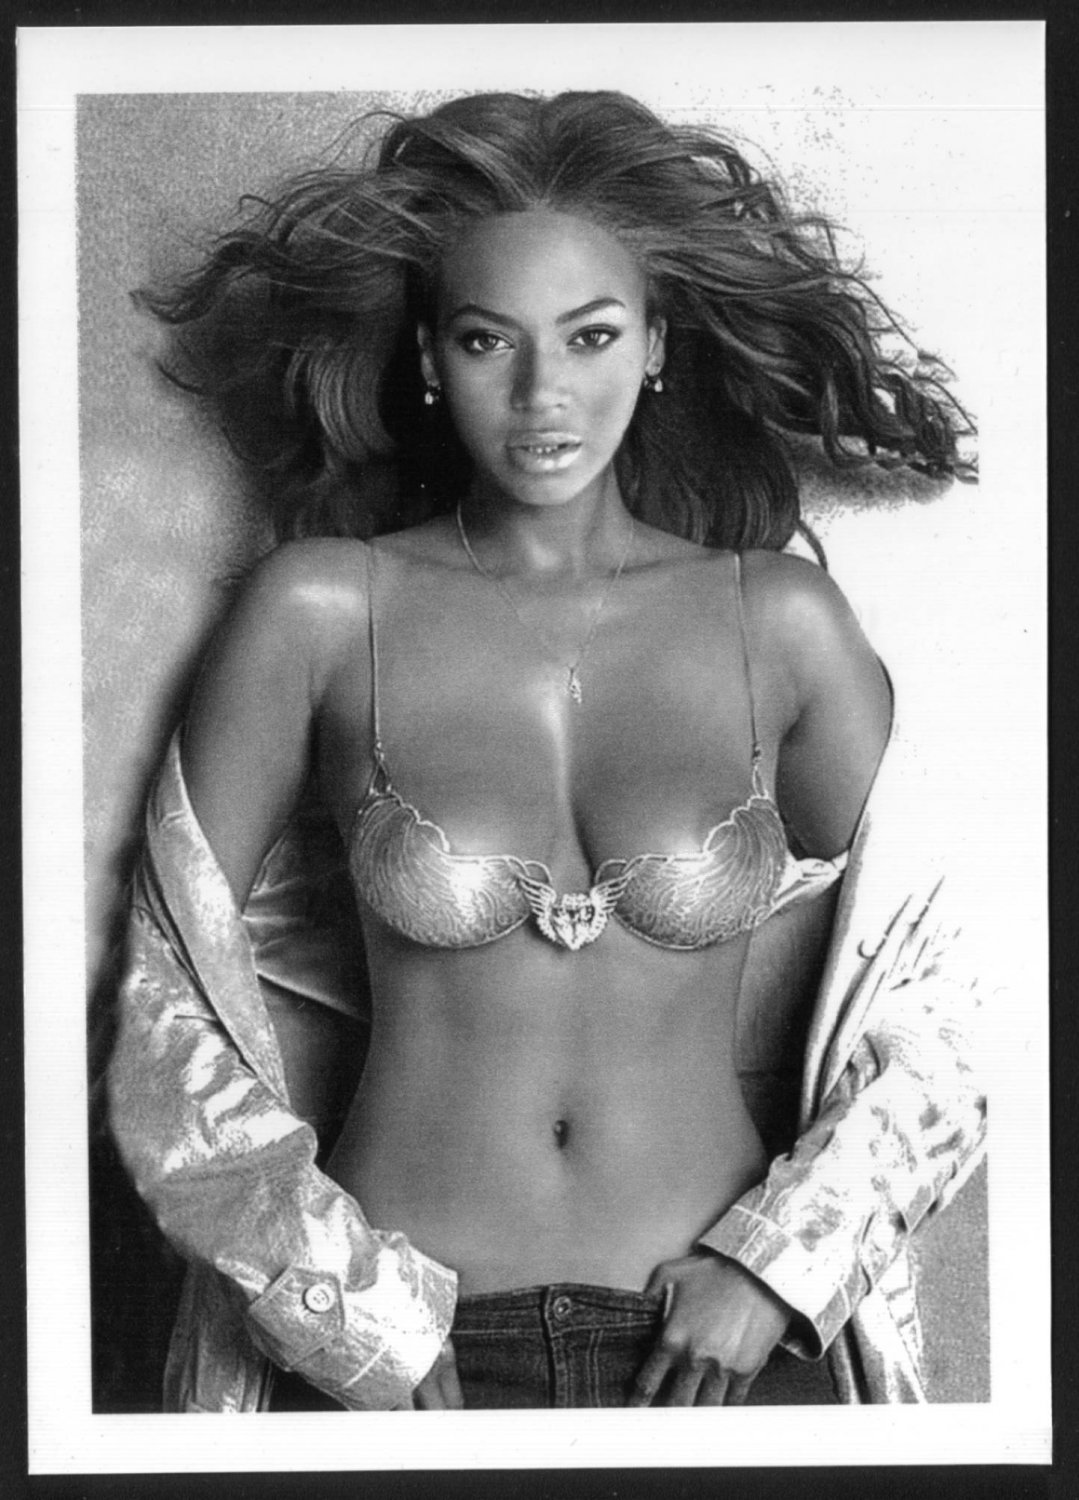 BEYONCE KNOWLES TOPLESS NEW REPRINT PHOTO 5X7 #3